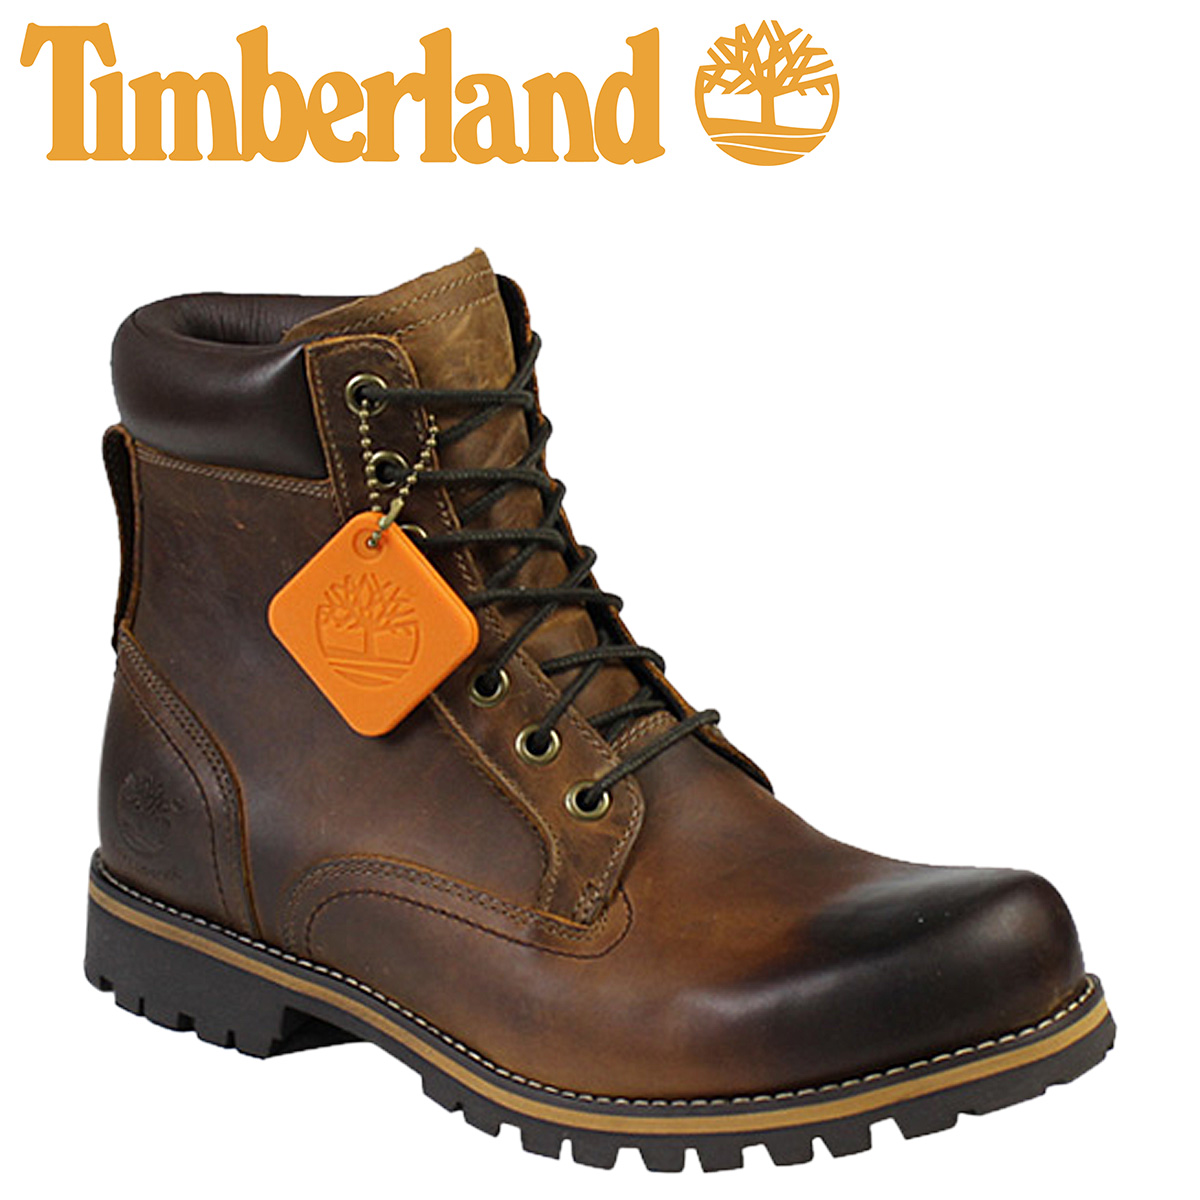 Whats Up Sports Rakuten Global Market Sold Out Timberland Earthkeepers Rugged 6 Inch Boots Brown 74134 6inch Waterproof